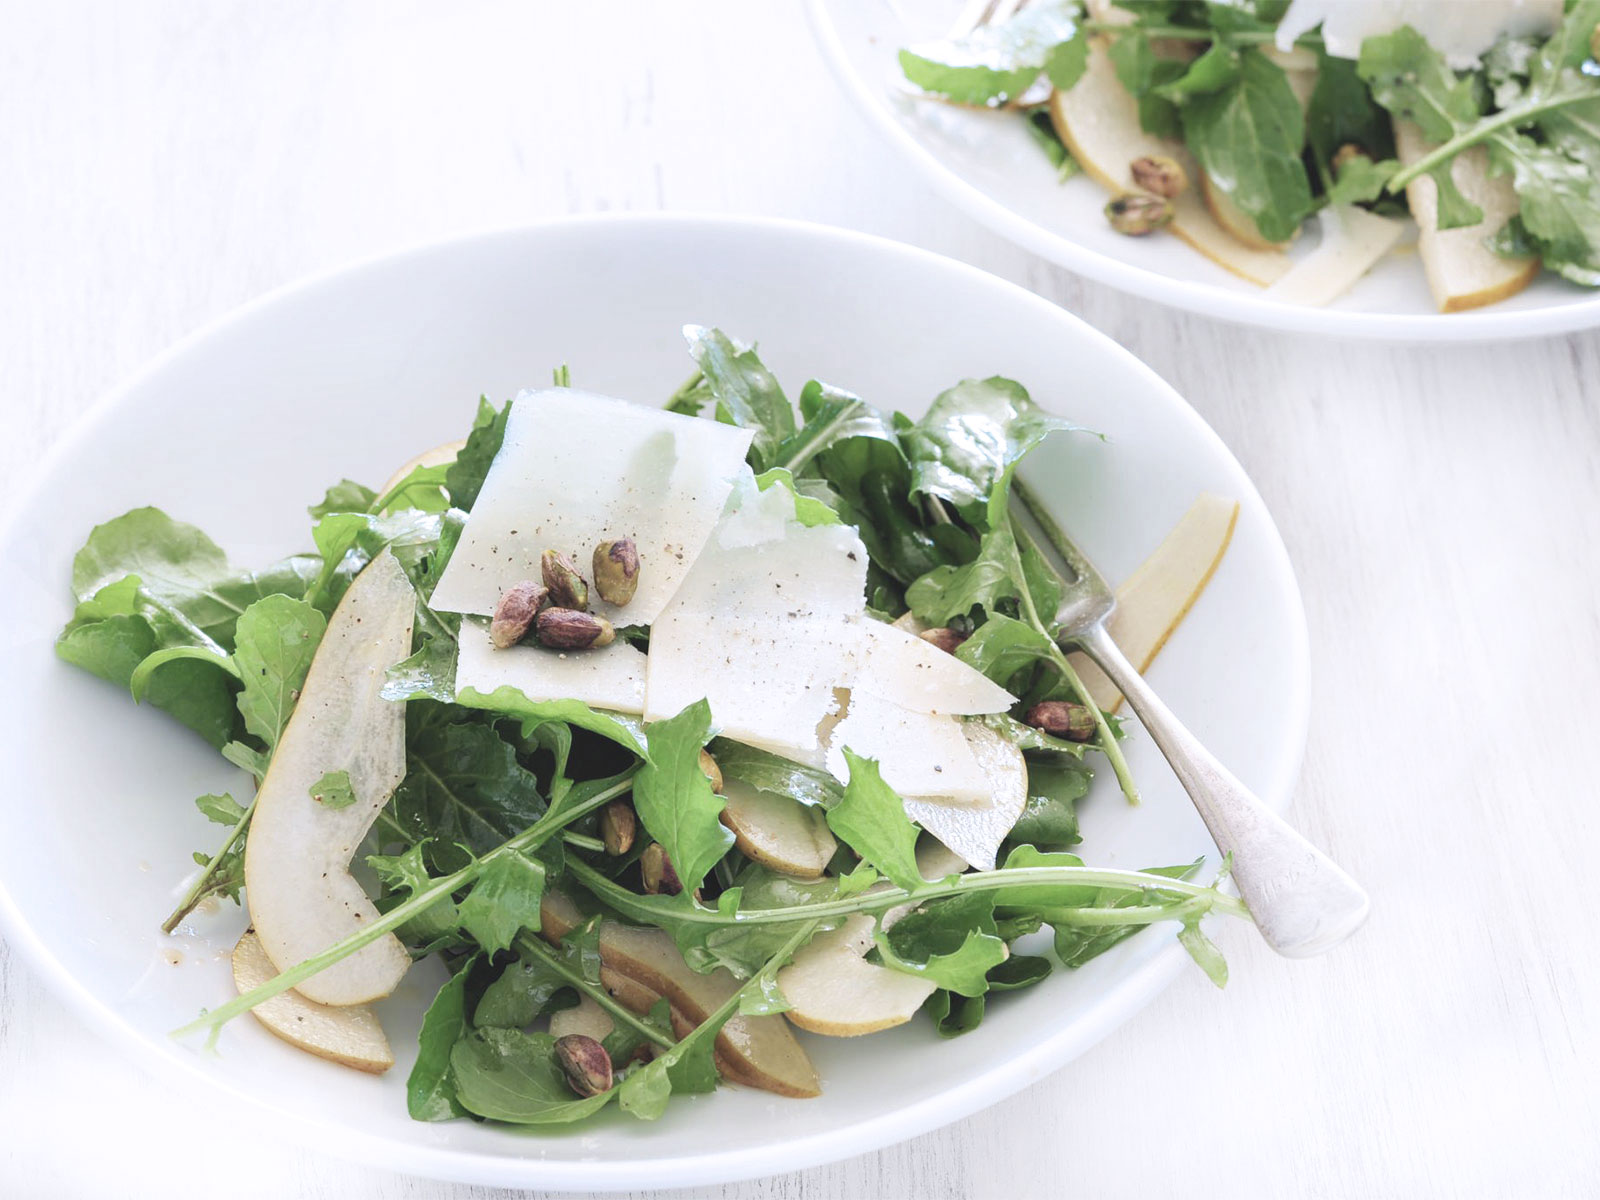 Finely sliced raw artichoke hearts and rocket lettuce topped with parmesan cheese